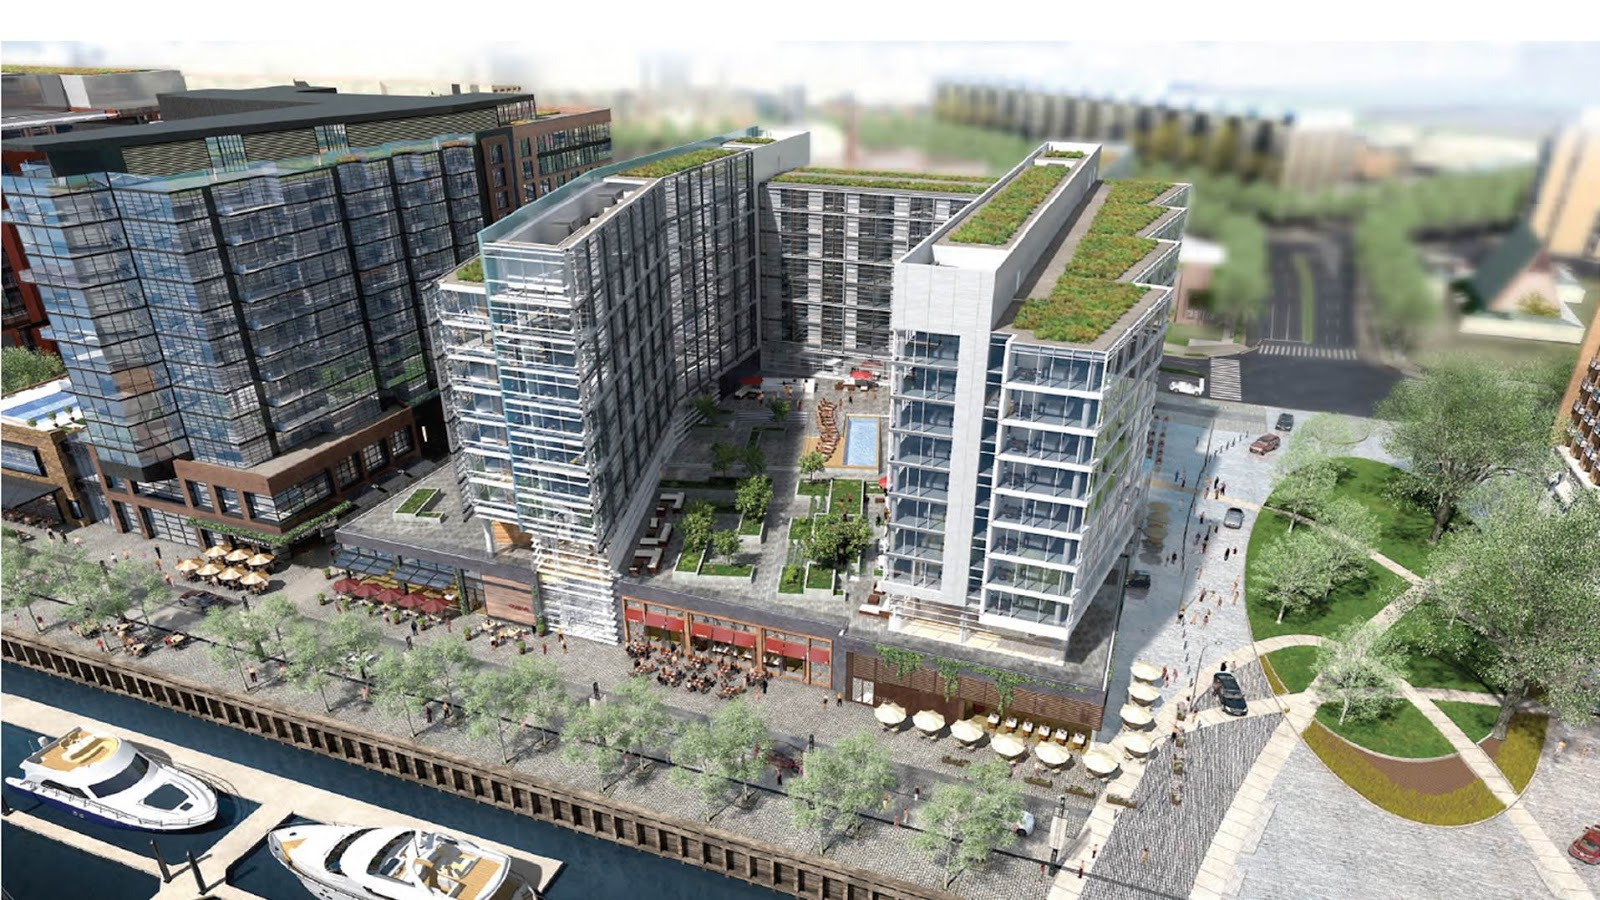 Jbg Will Come Before Anc 6d At Their February 11 Meeting To Present Plans For The Two Hotels Proposed Parcel 5 Of Wharf These Are Part